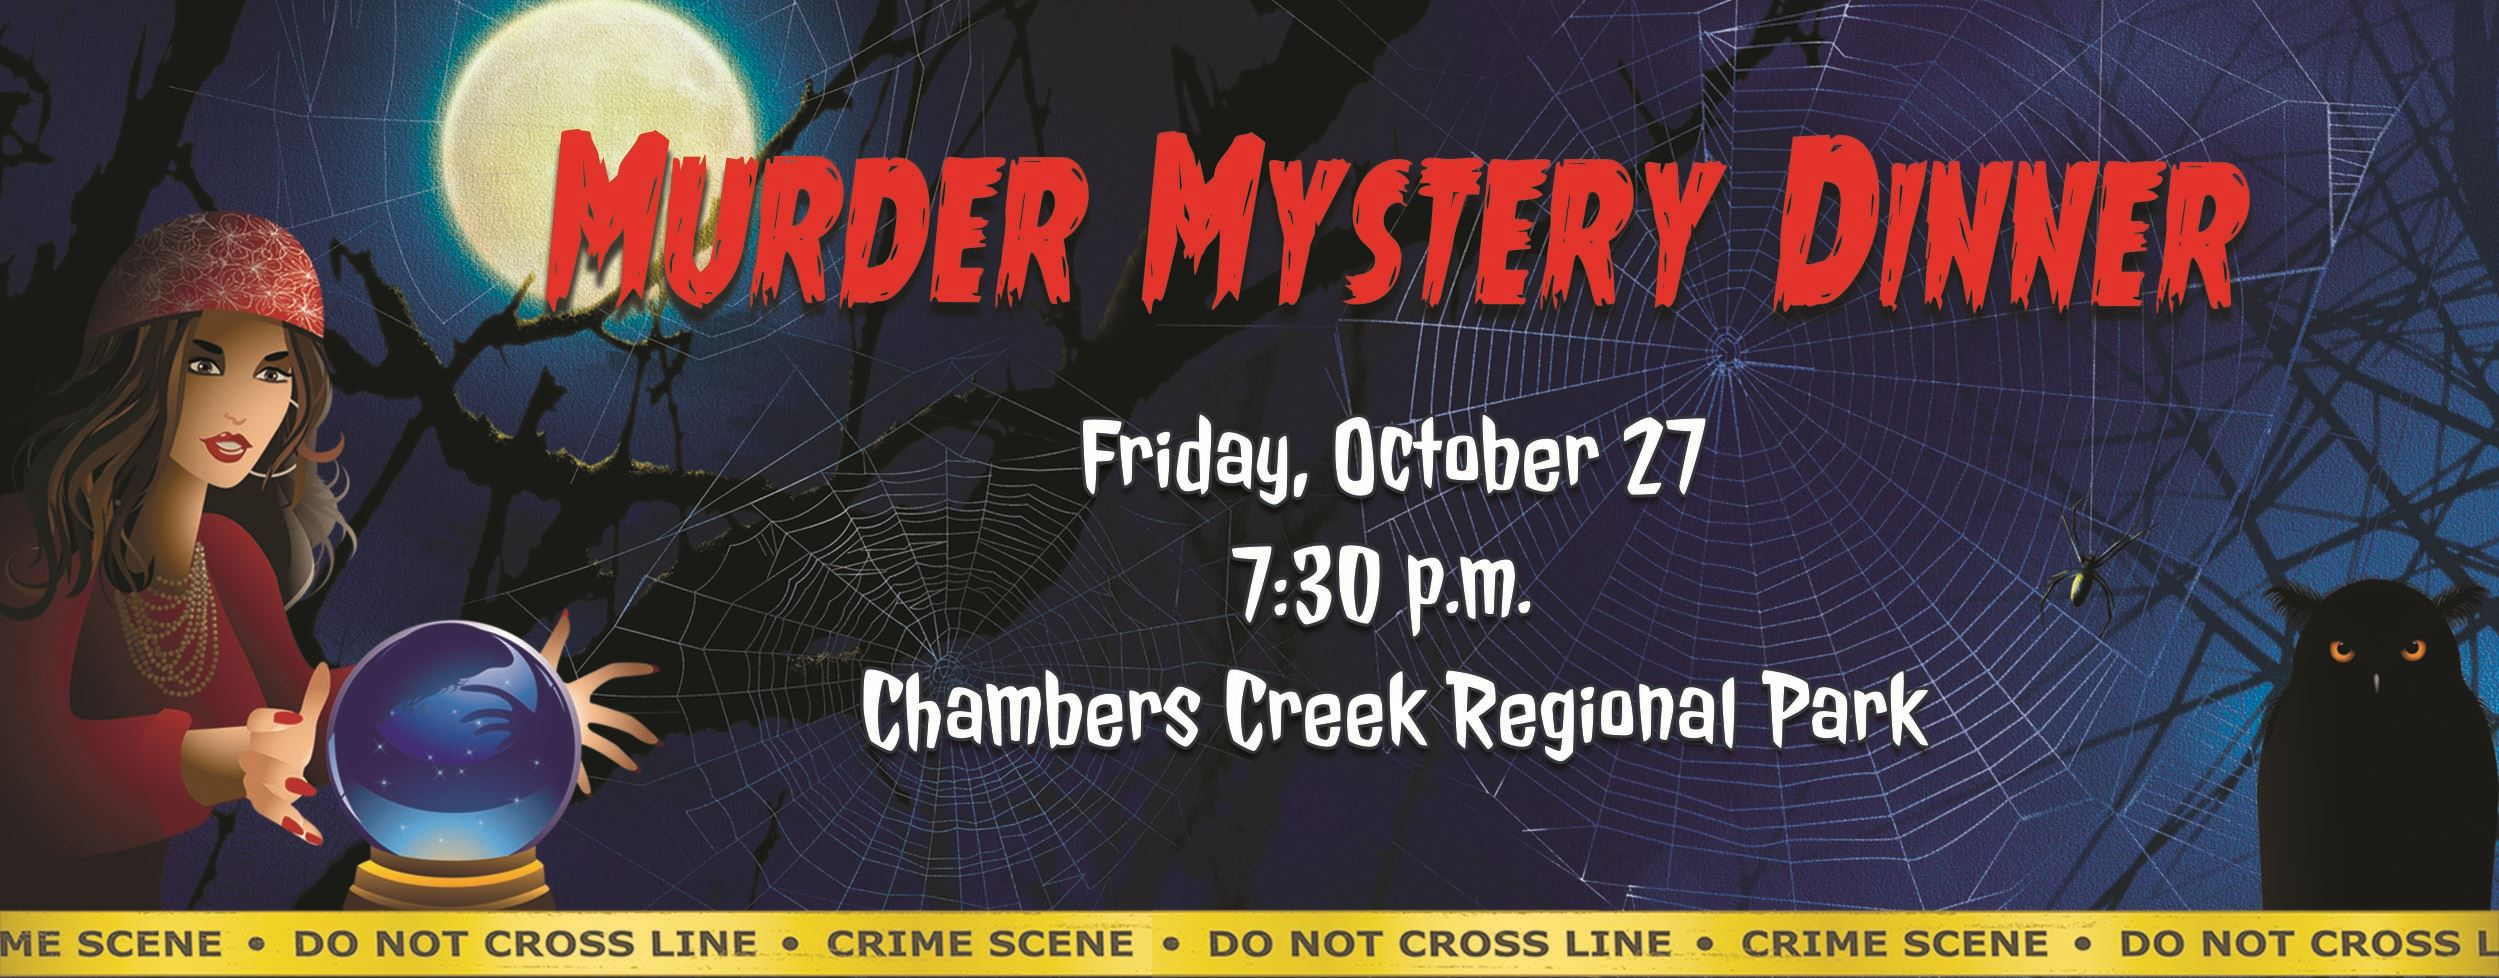 Image of Murder Mystery Dinner graphic